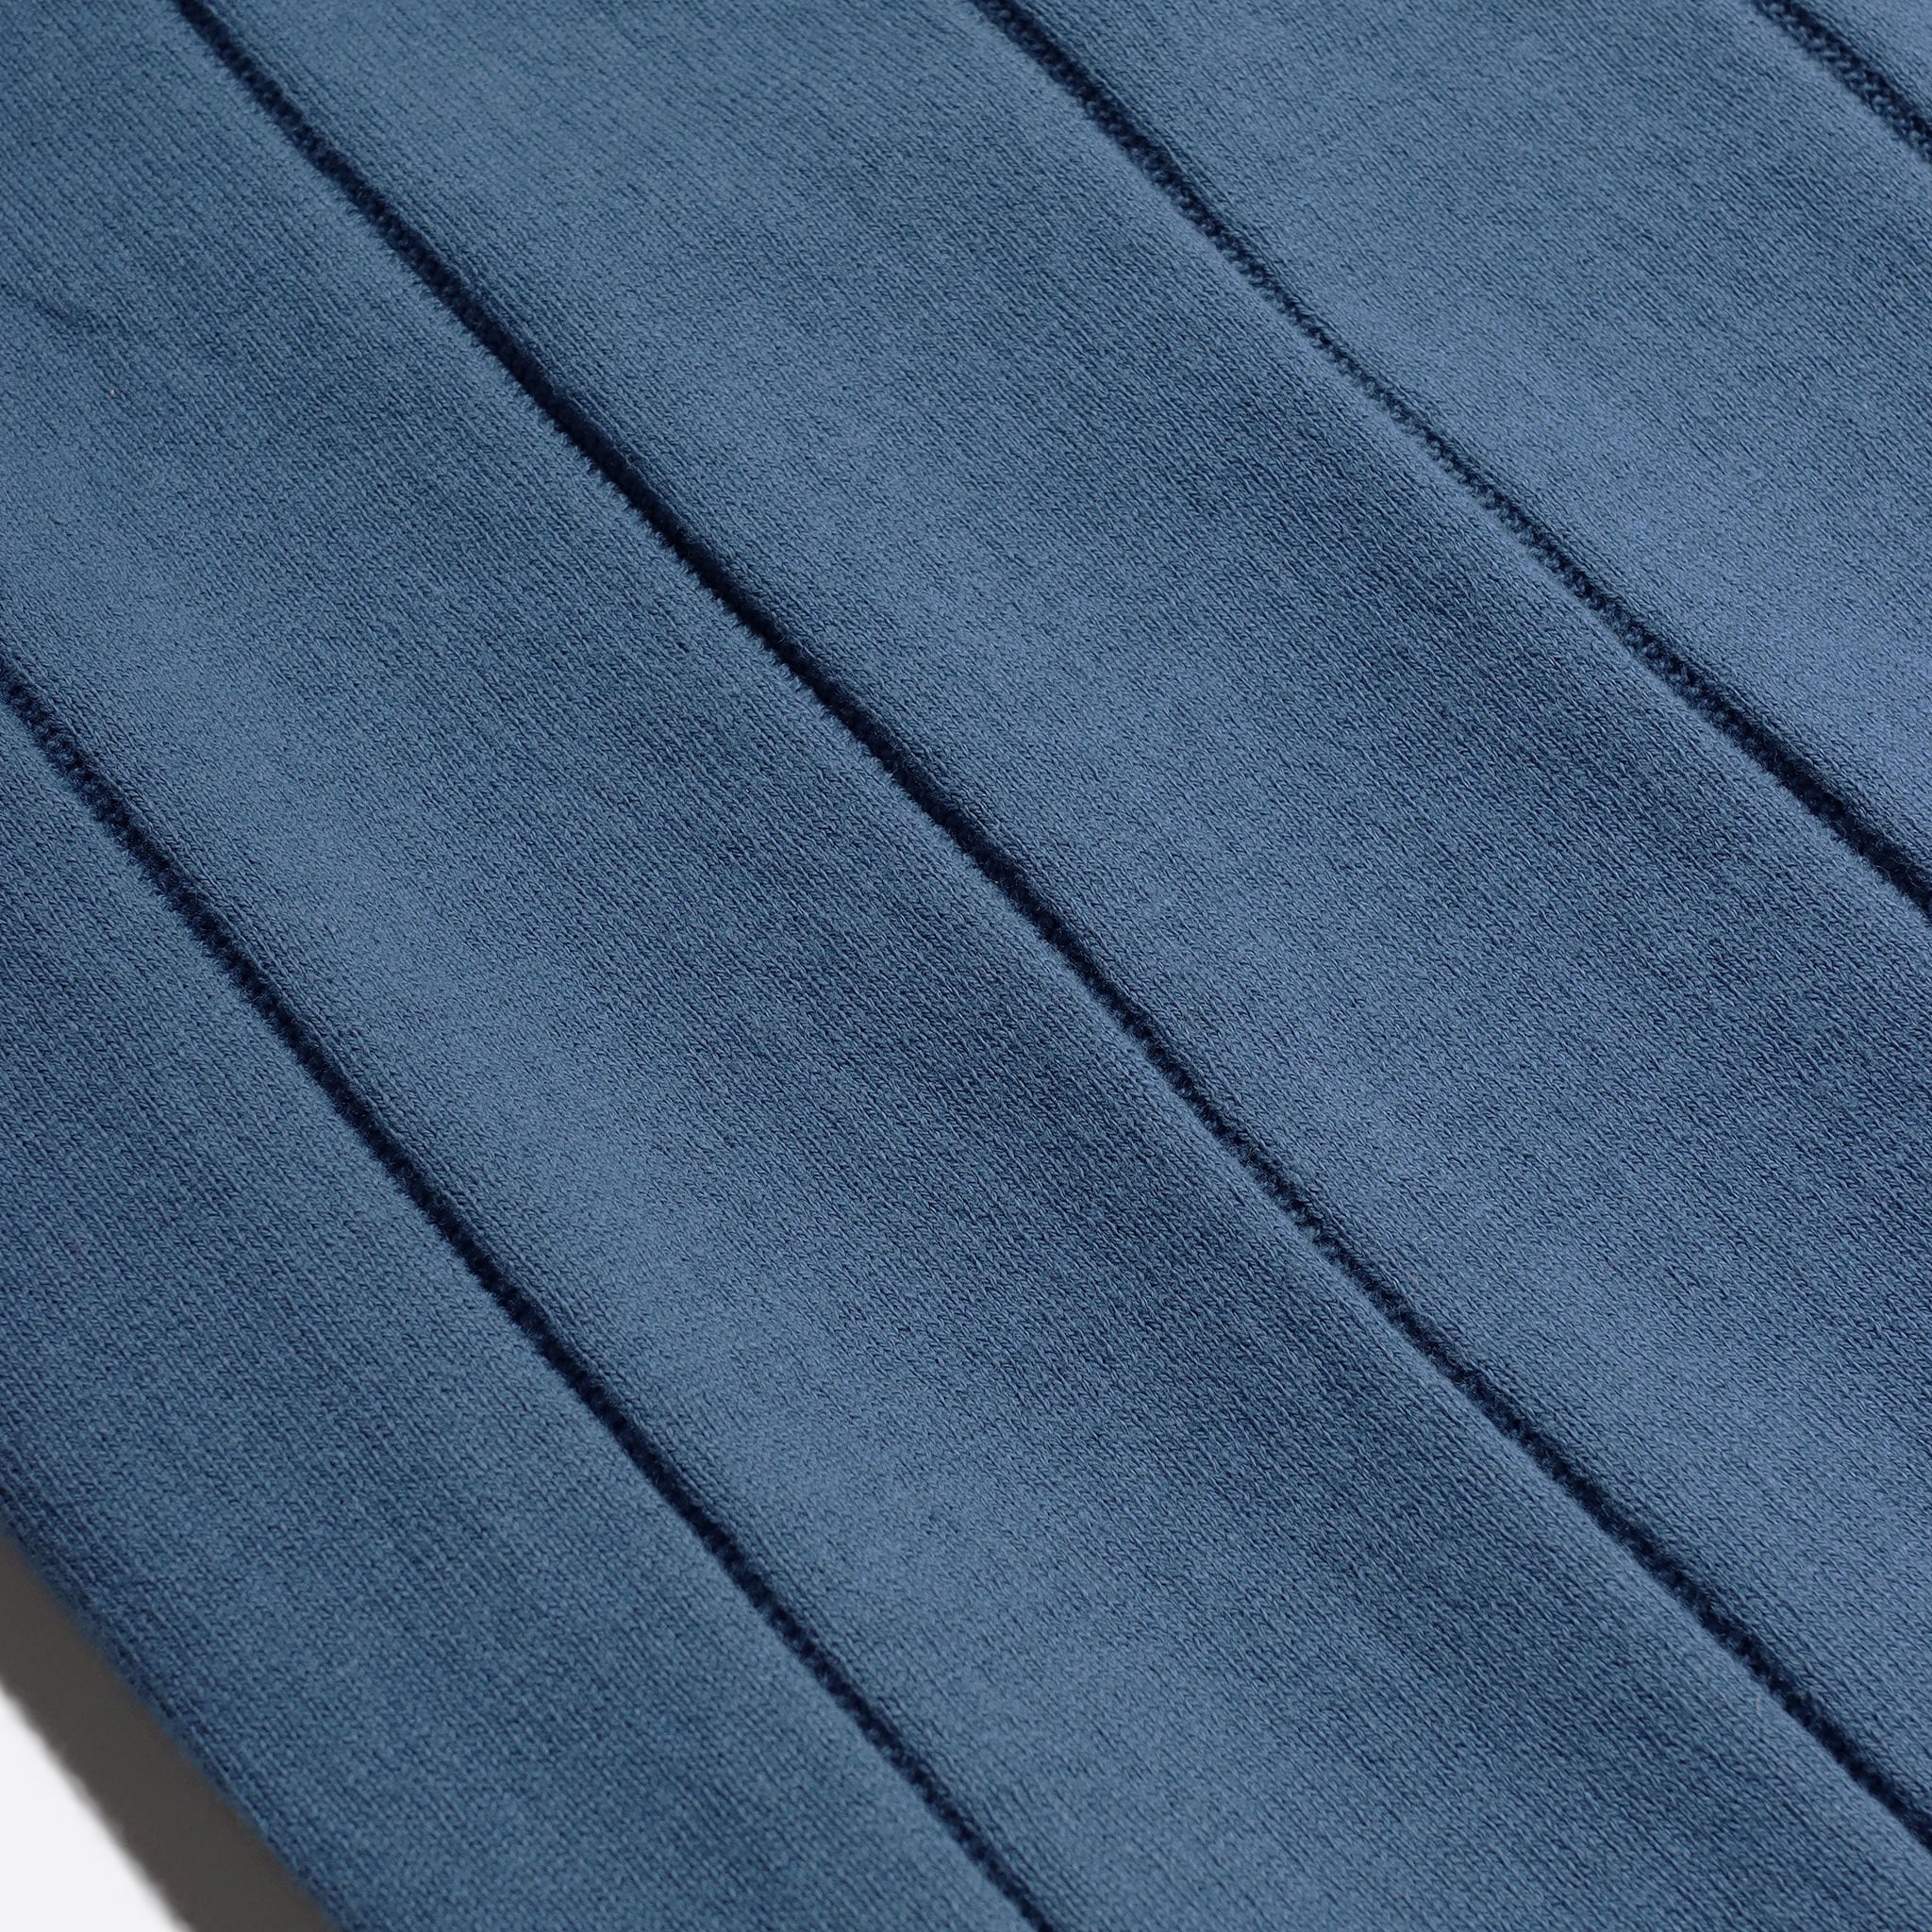 Far Afield Jacobs Short Sleeve Polo a Ensign Blue Organic Cotton FabricMid Century Inspired 5